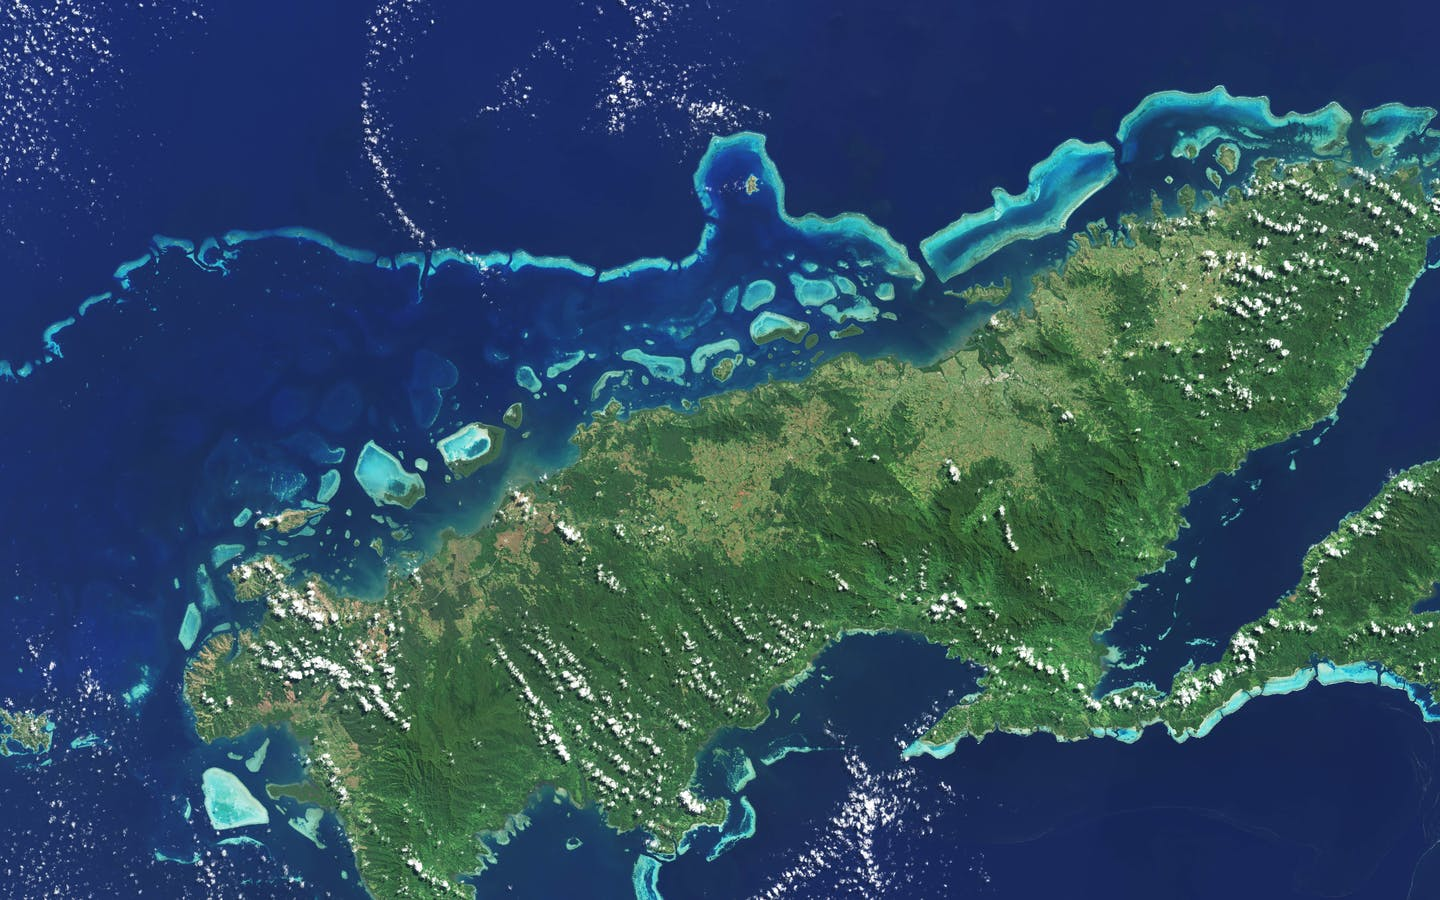 Global mapping of coral reefs